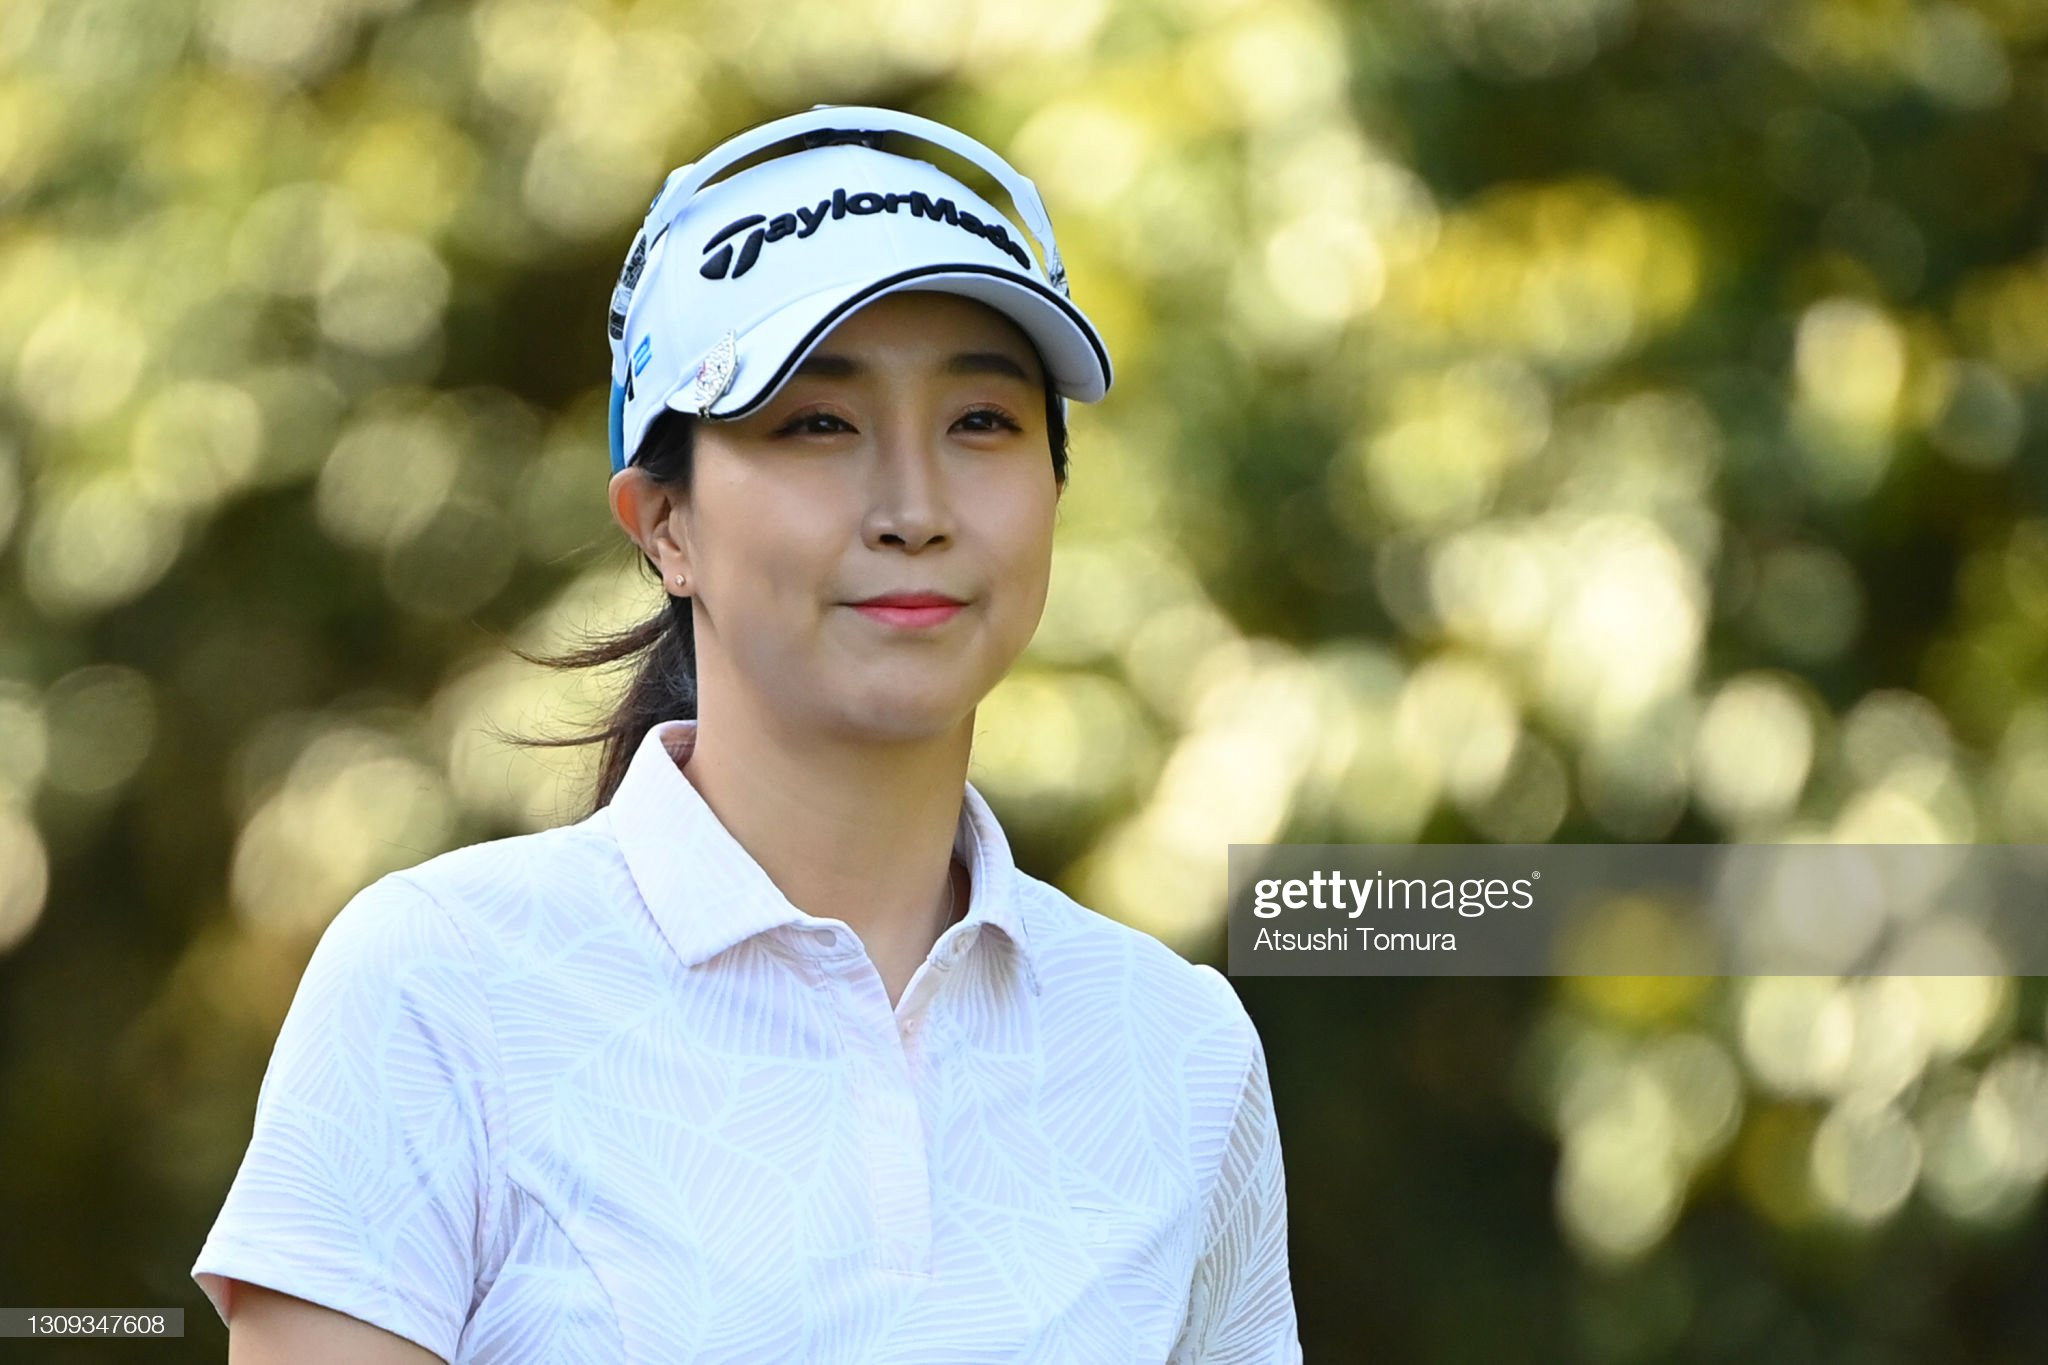 https://media.gettyimages.com/photos/jaeeun-chung-of-south-korea-smiles-on-the-11th-hole-during-the-second-picture-id1309347608?s=2048x2048